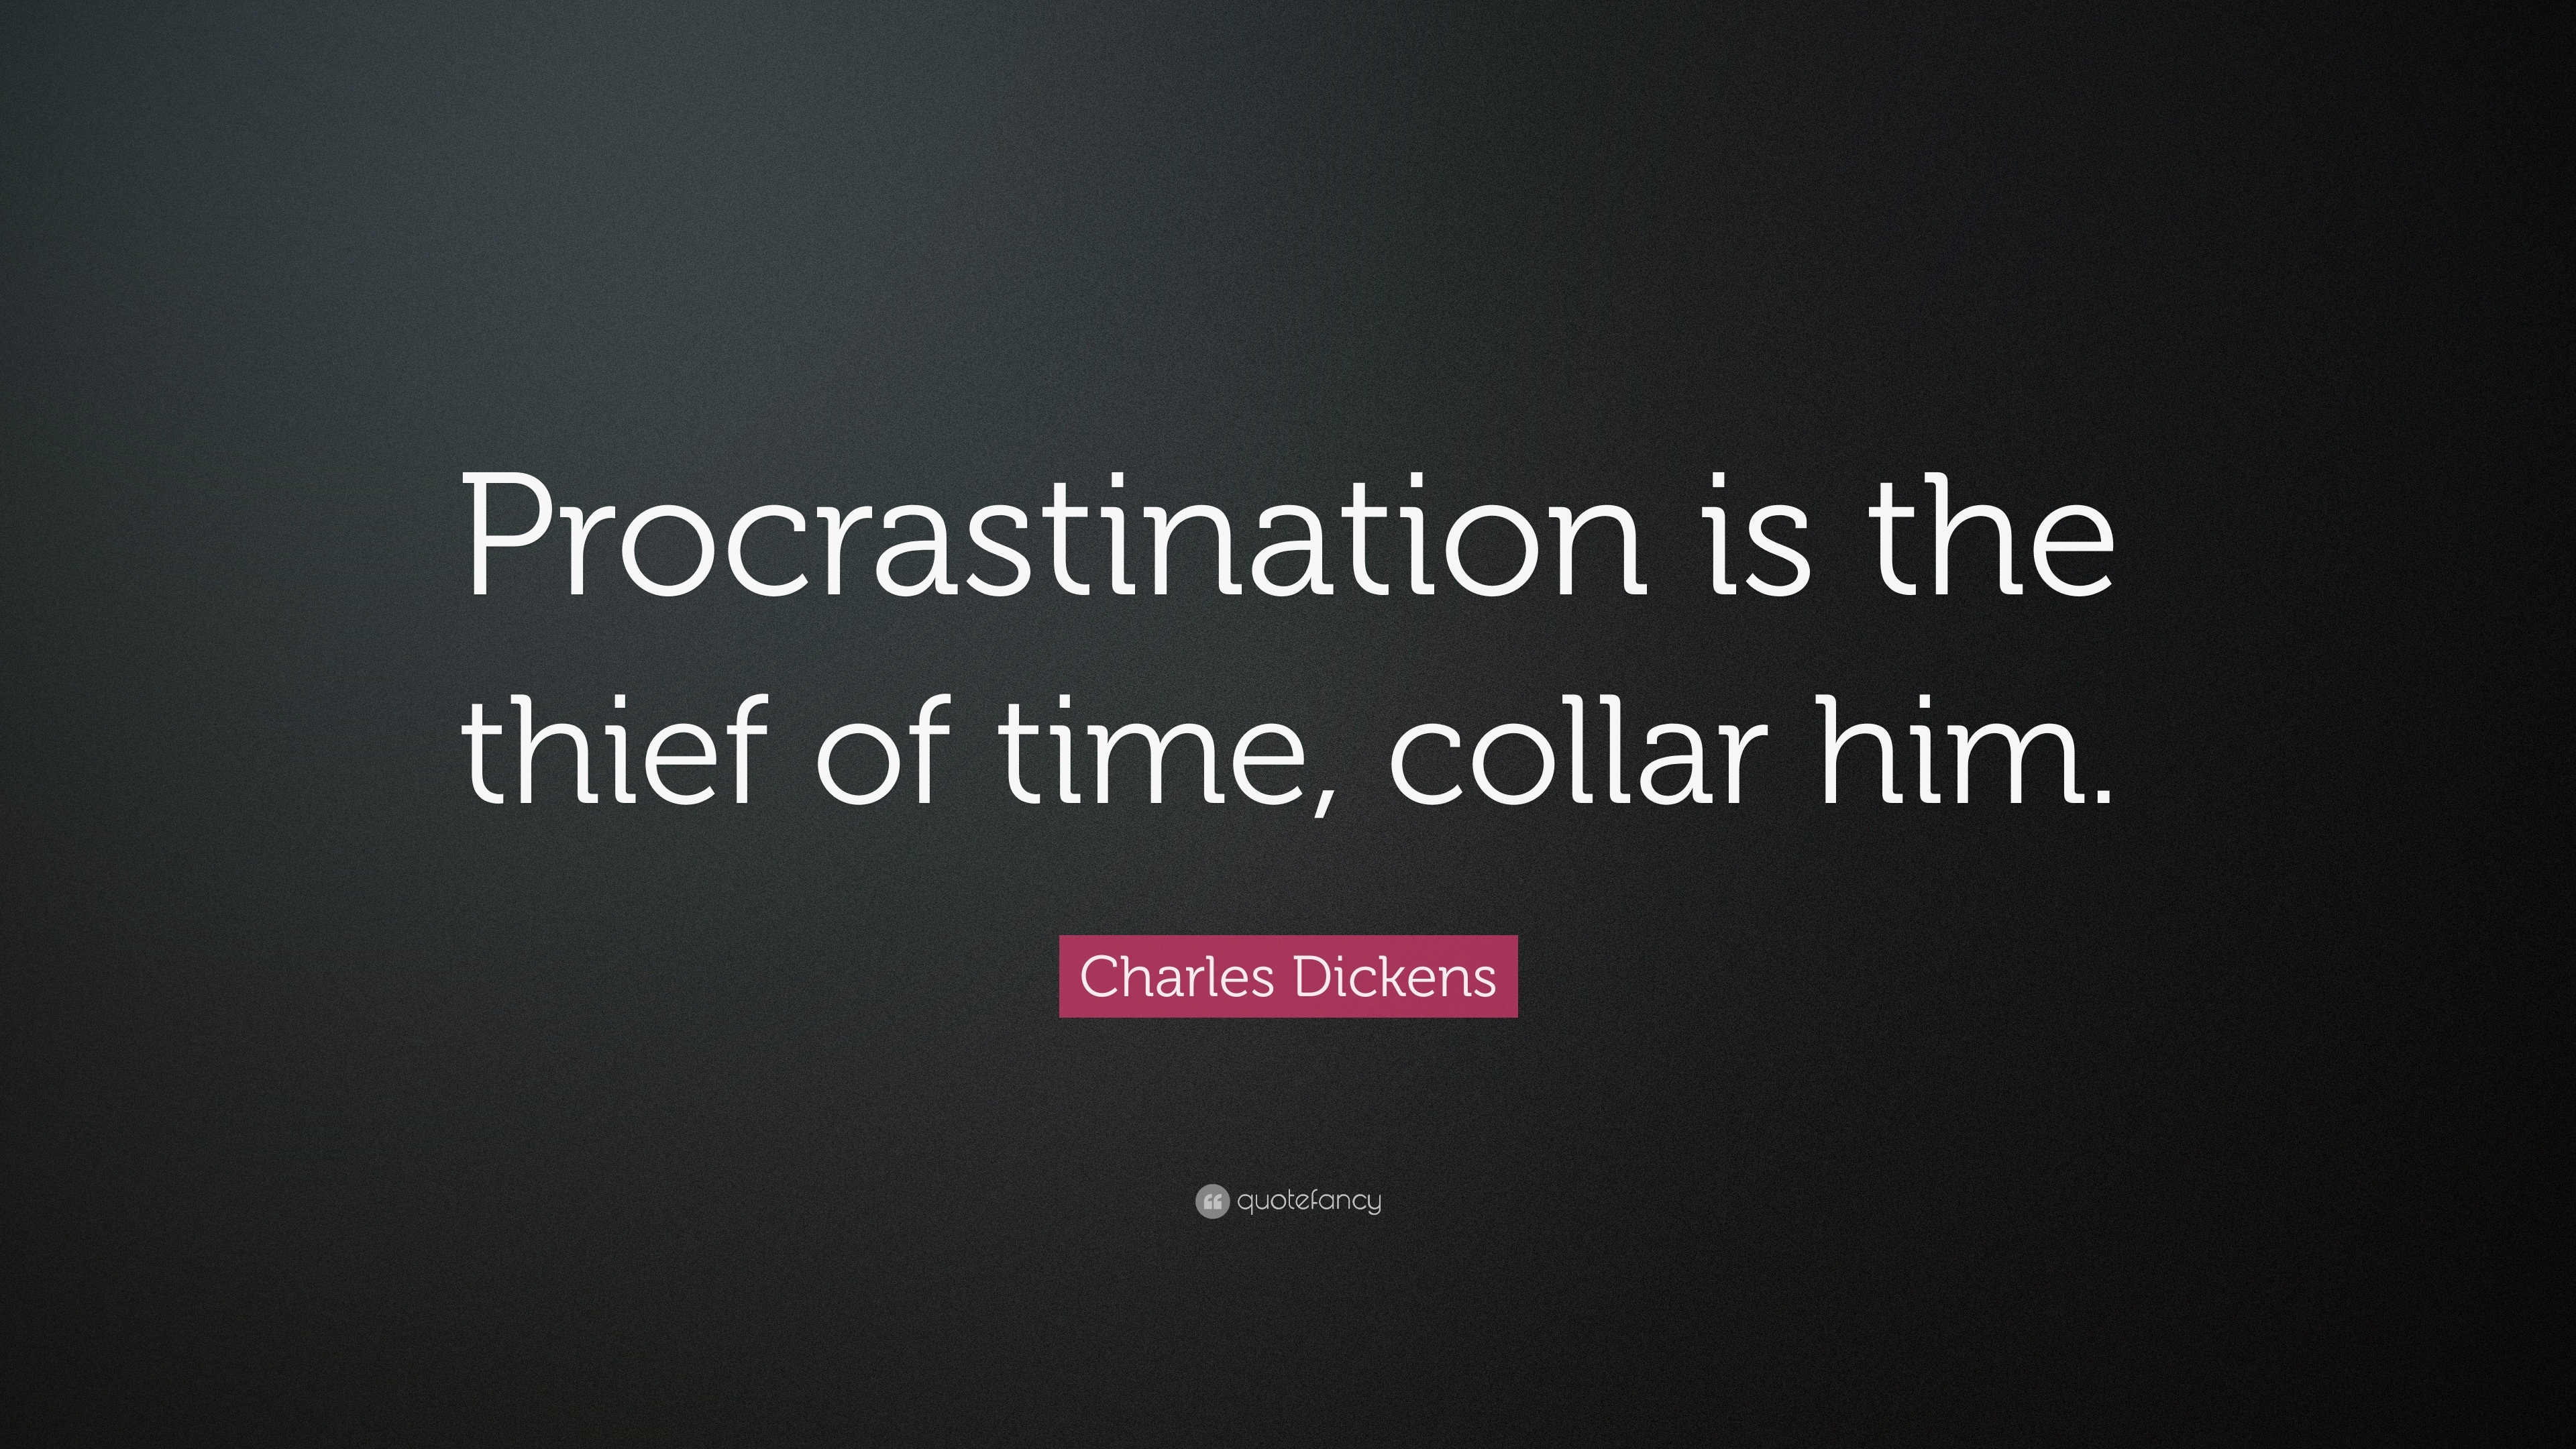 essay on procrastination is a subtle thief of time